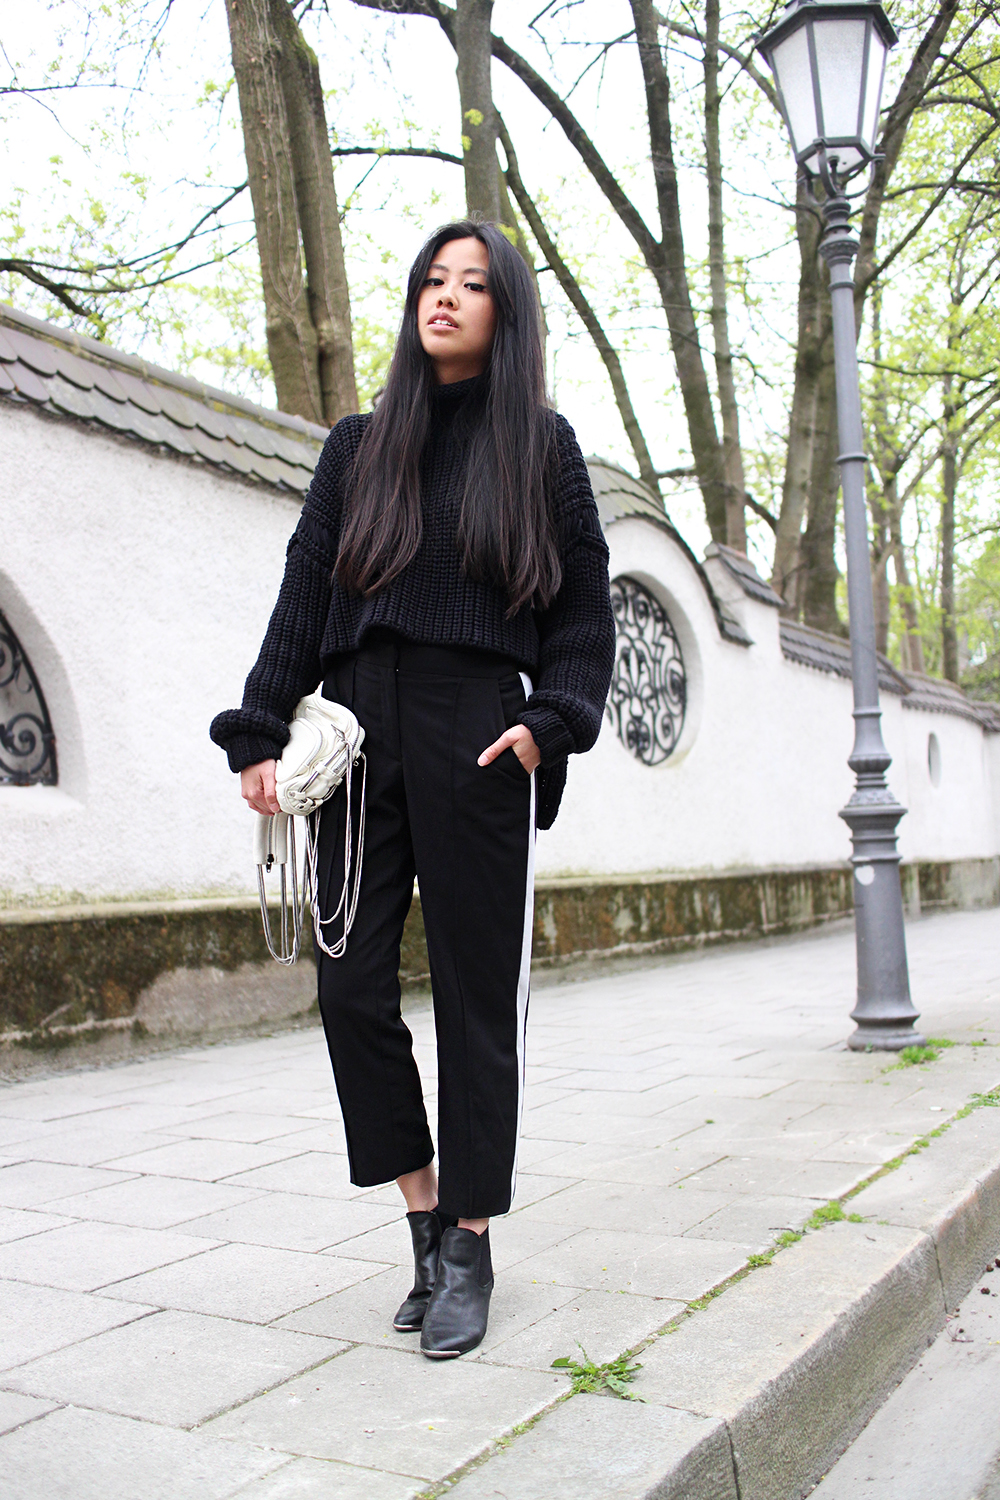 IHEARTALICE.DE – Fashion & Travel-Blog by Alice M. Huynh from Germany: All Black Everything Look wearing Sporty Trousers, Oversize Heavy Alexander Wang Knitjumper, Alexander Wang Camera Brenda Bag